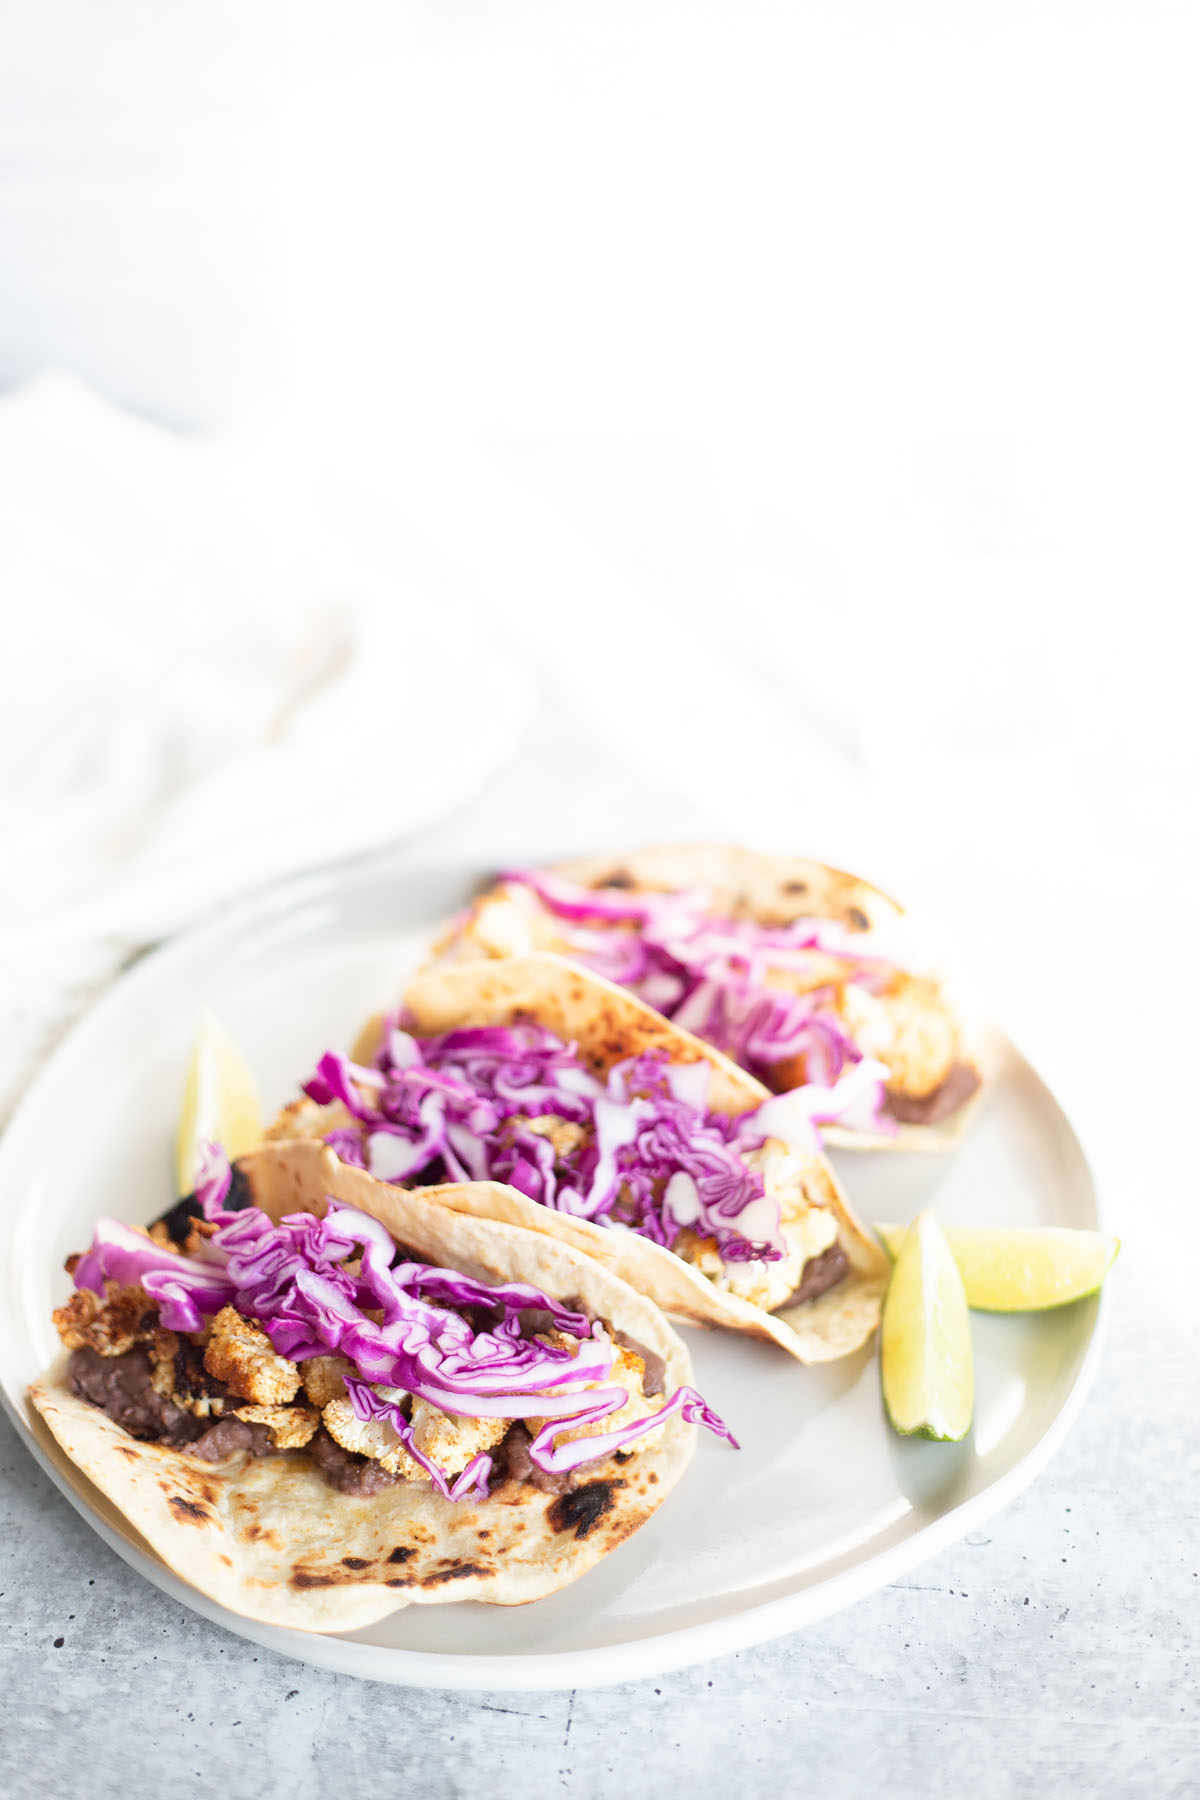 cauliflower tacos with red cabbage